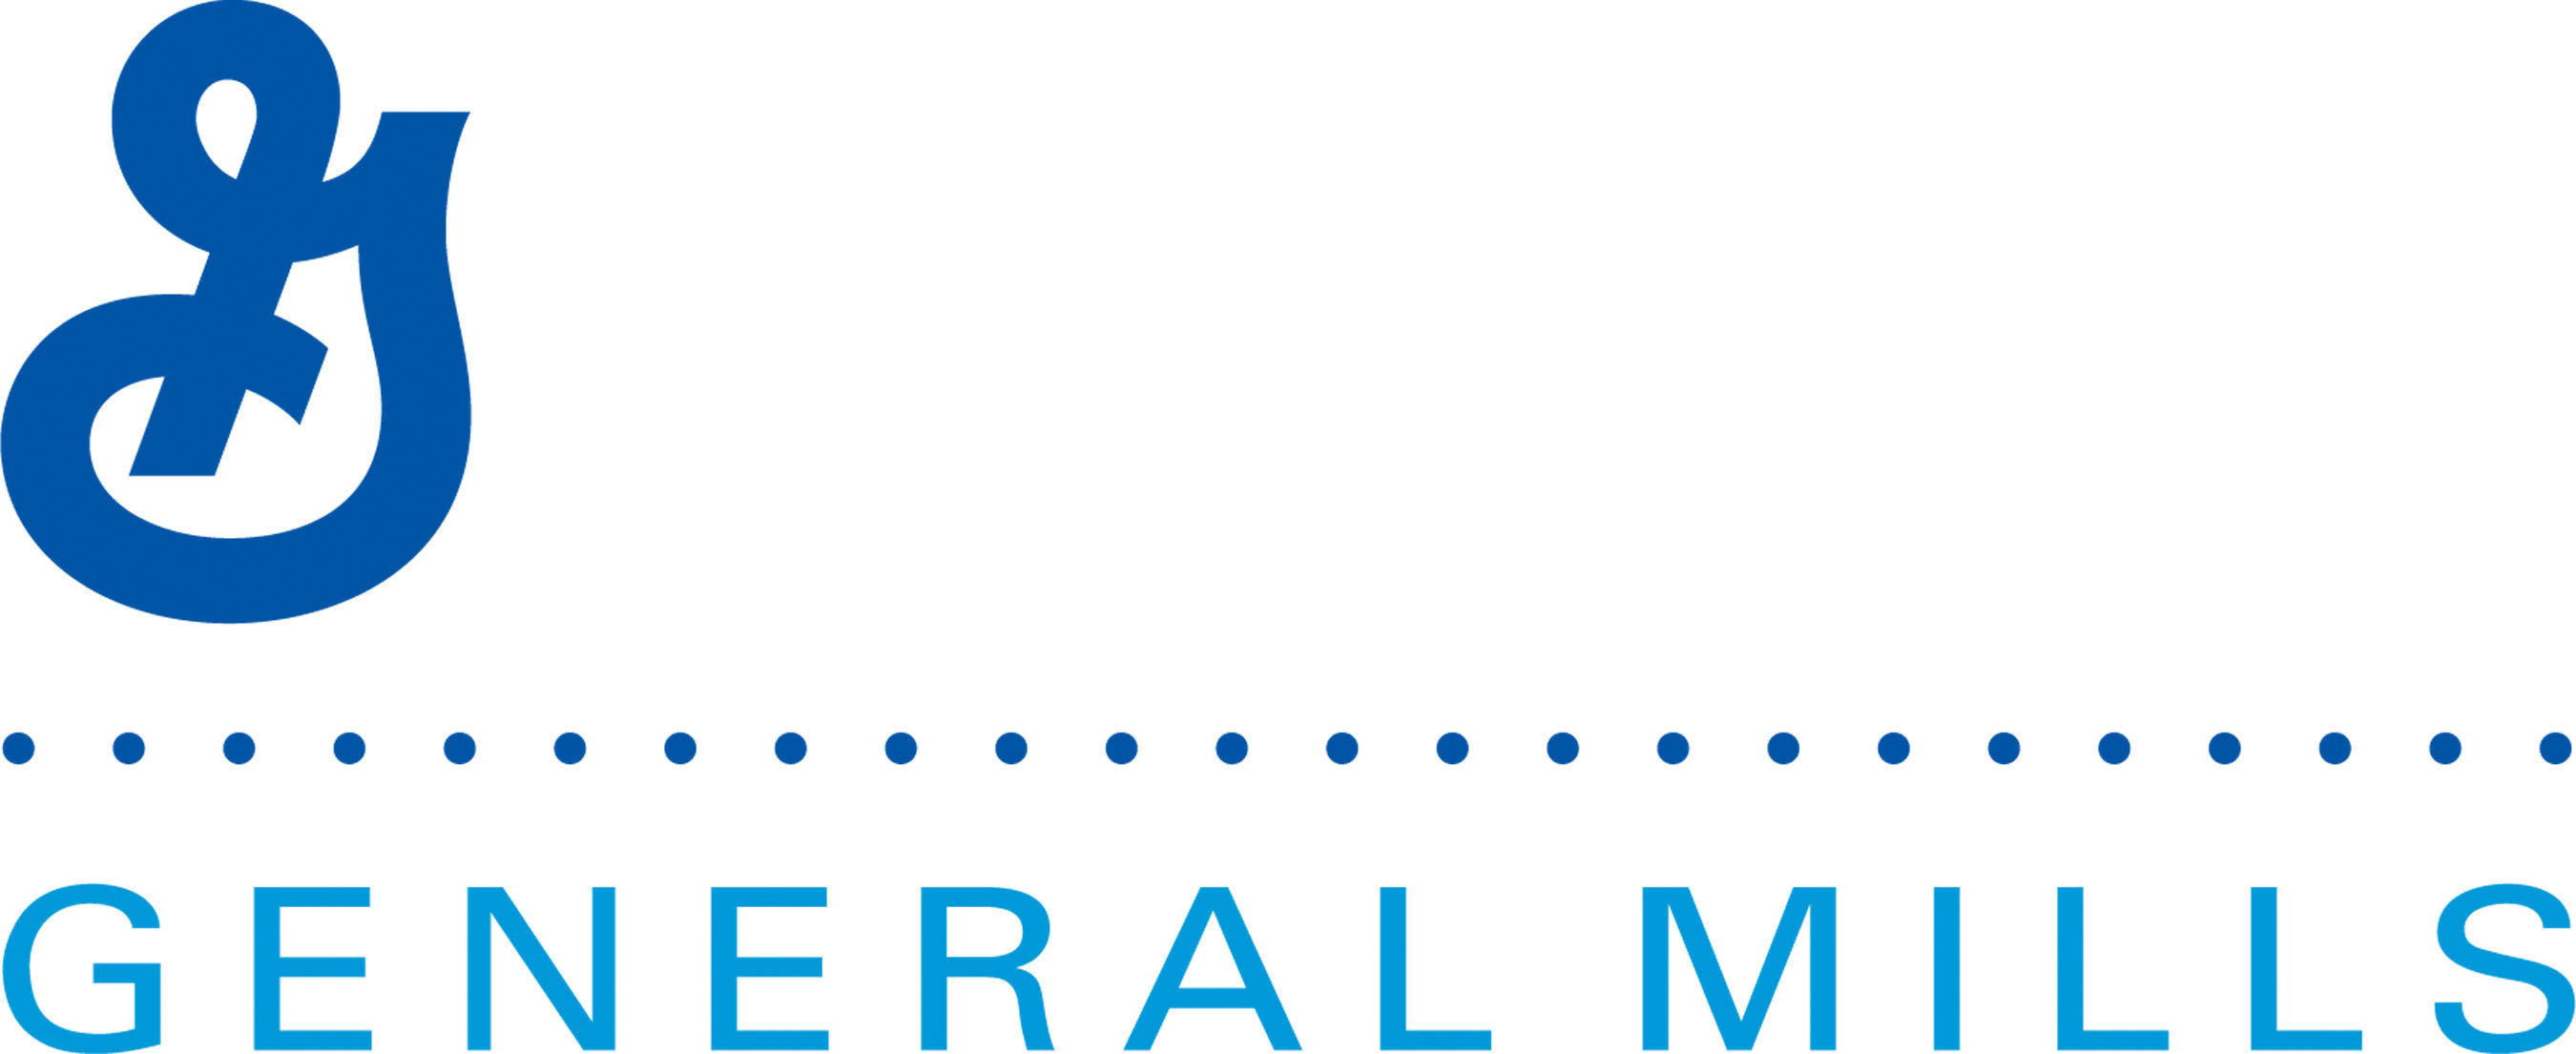 General Mills is one of the world's leading food companies, operating in more than 100 countries. Its brands include Cheerios, Fiber One, Haagen-Dazs, Nature Valley, Yoplait, Betty Crocker, Pillsbury, Green Giant, Old El Paso, and Wanchai Ferry.